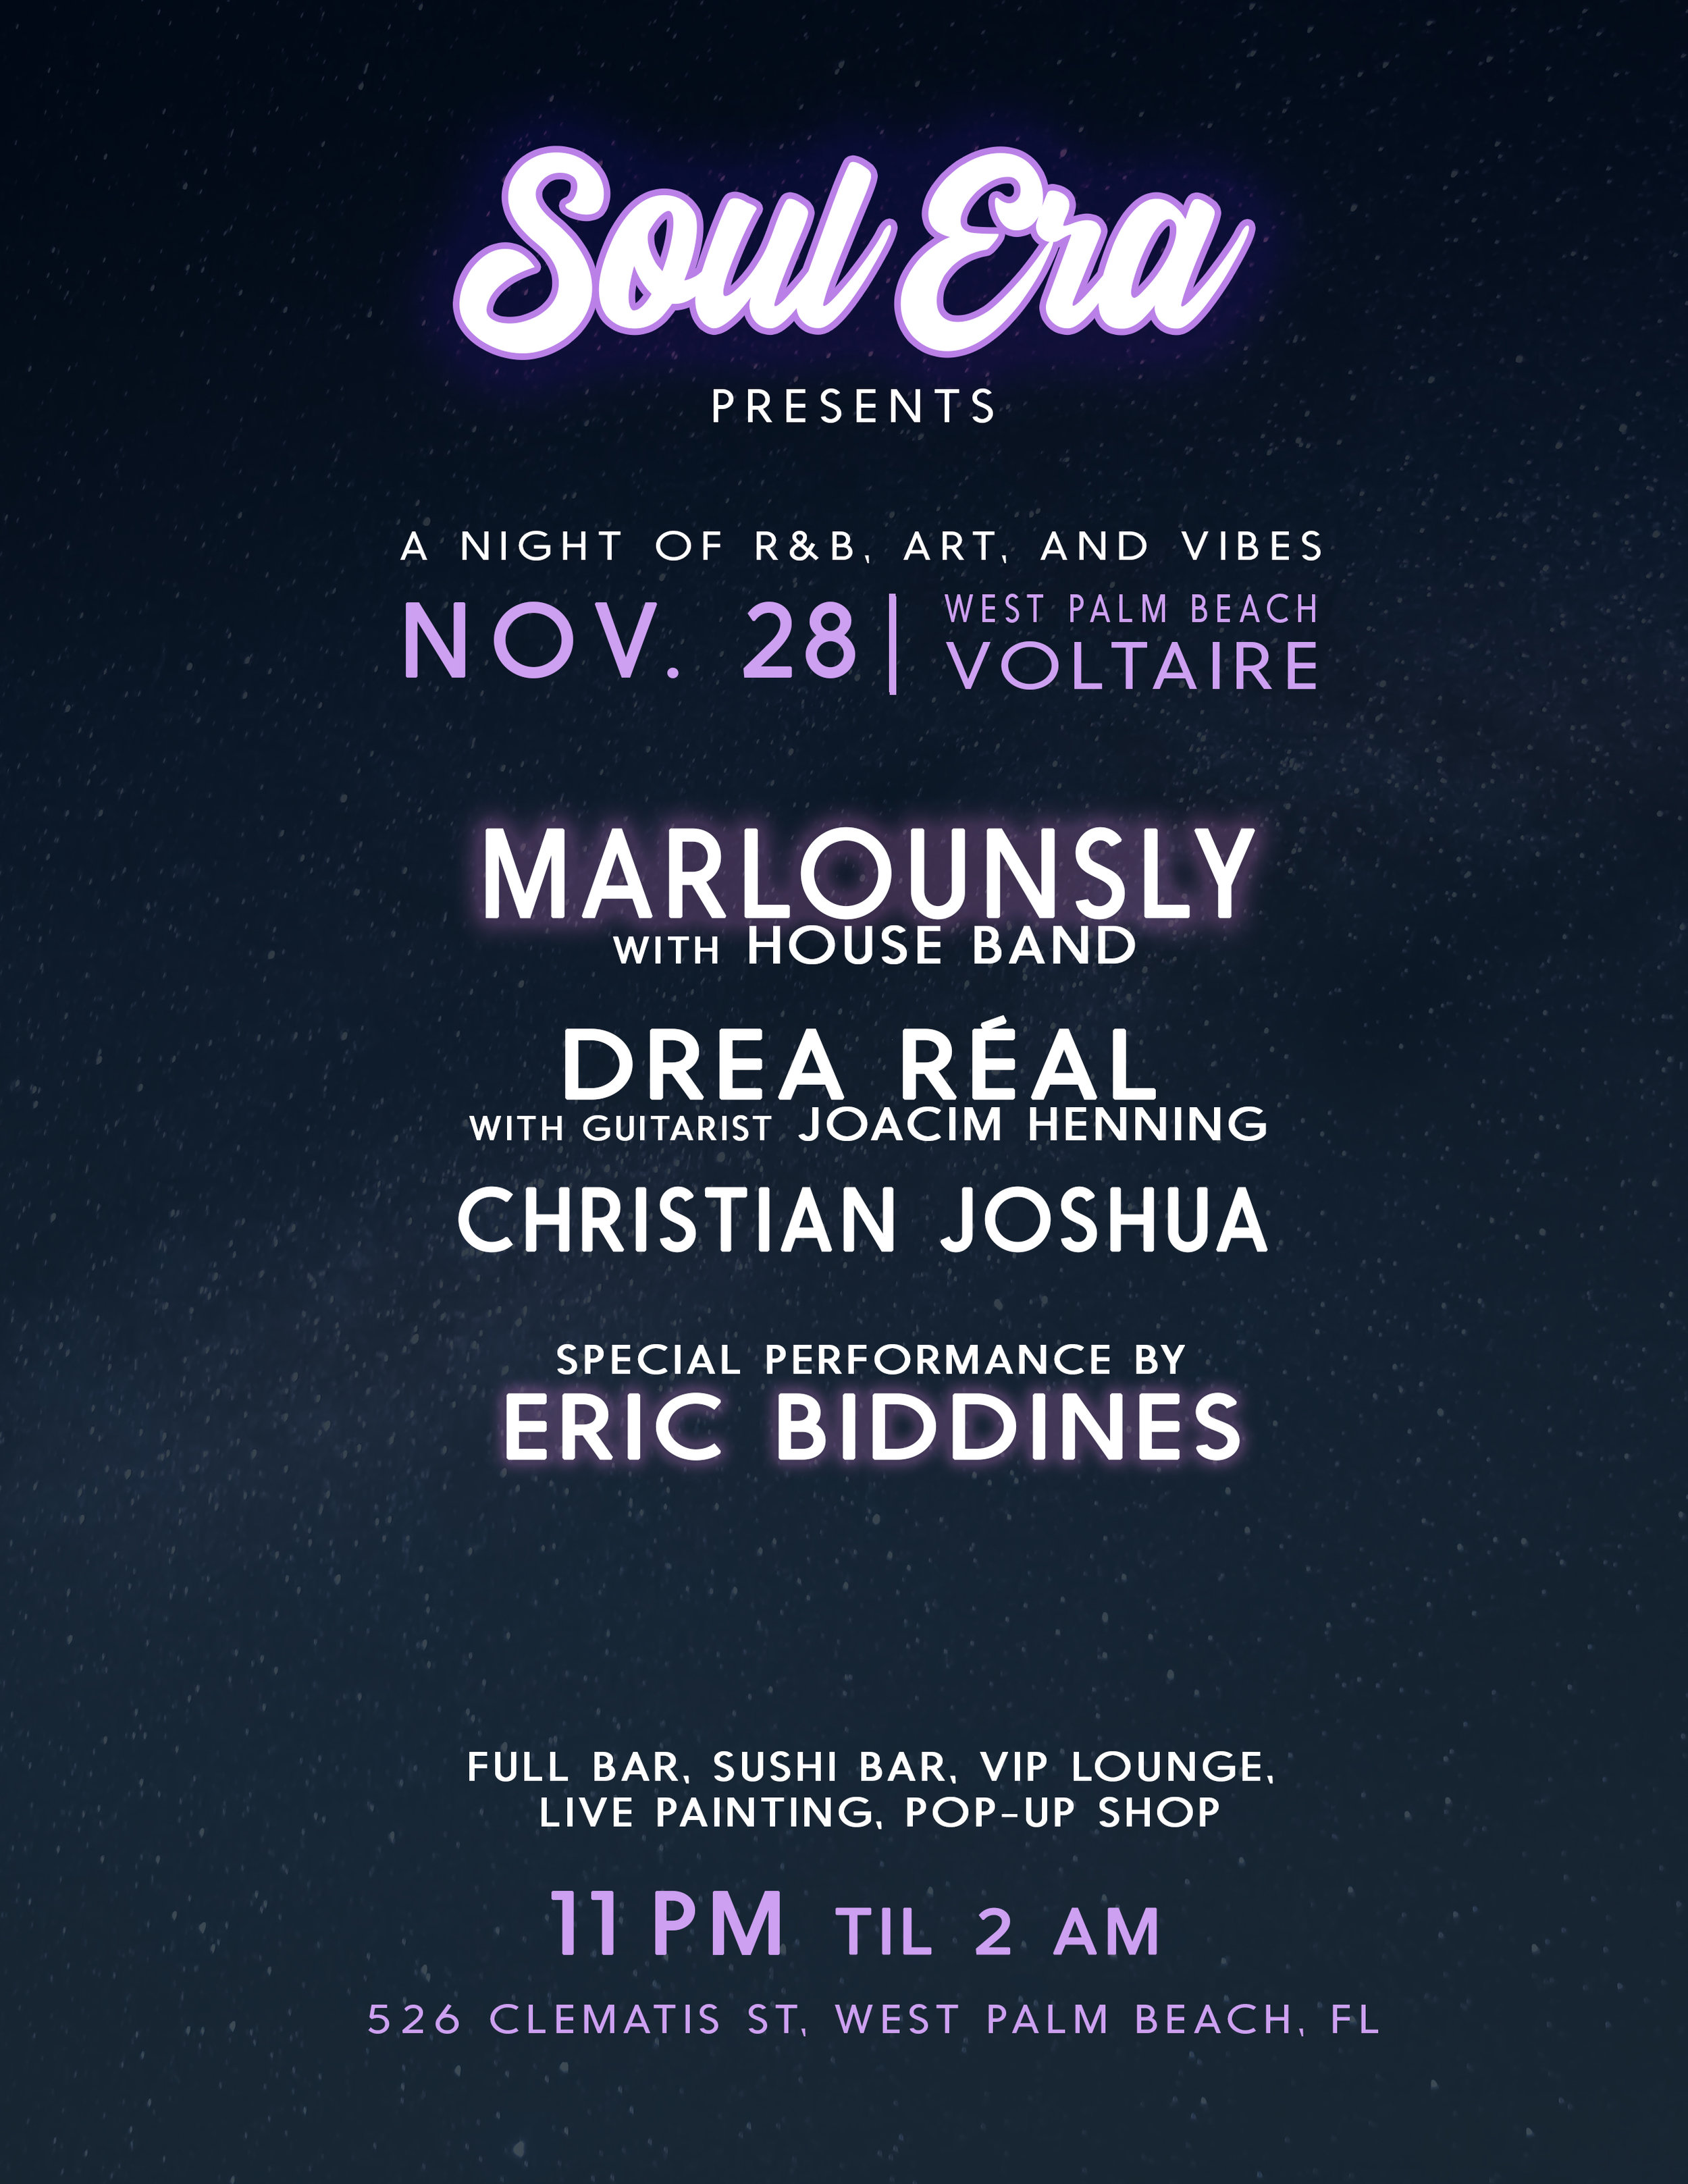 Soul Era Flyer without Hadar (UPDATED) 3.jpg